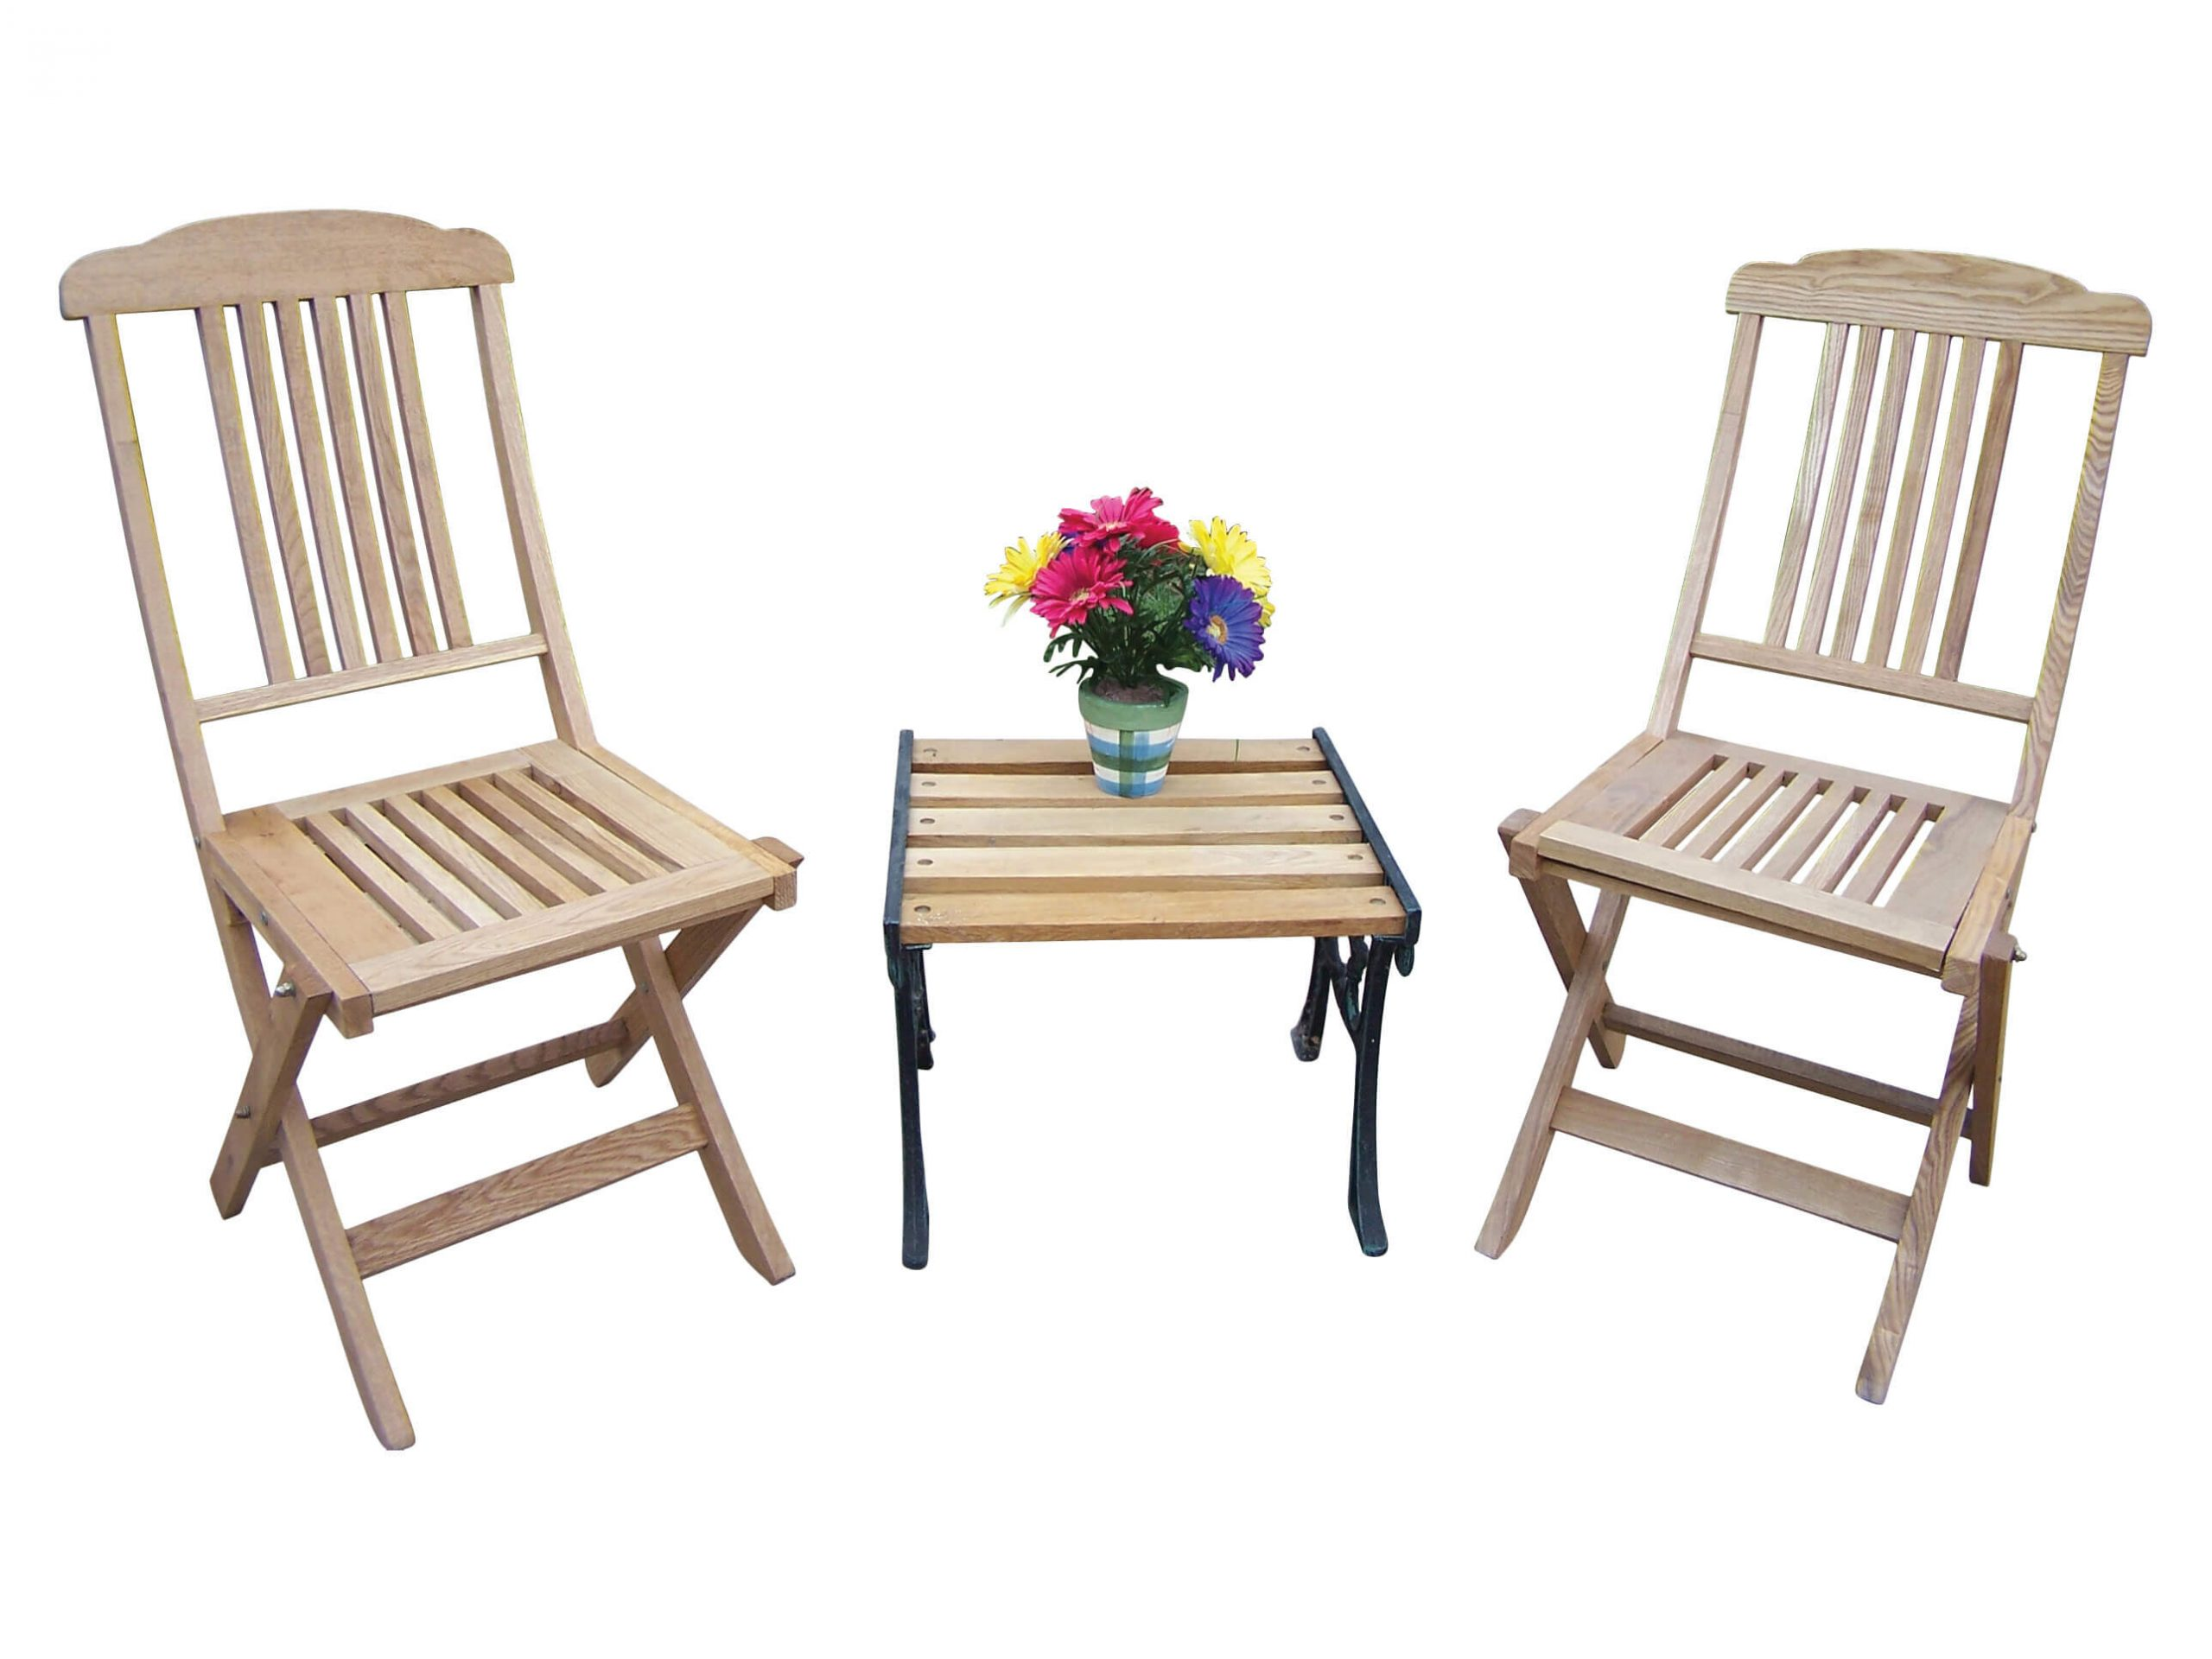 CLASSIC PICNIC OUTDOOR DINING SET FOR SMALL SPACES